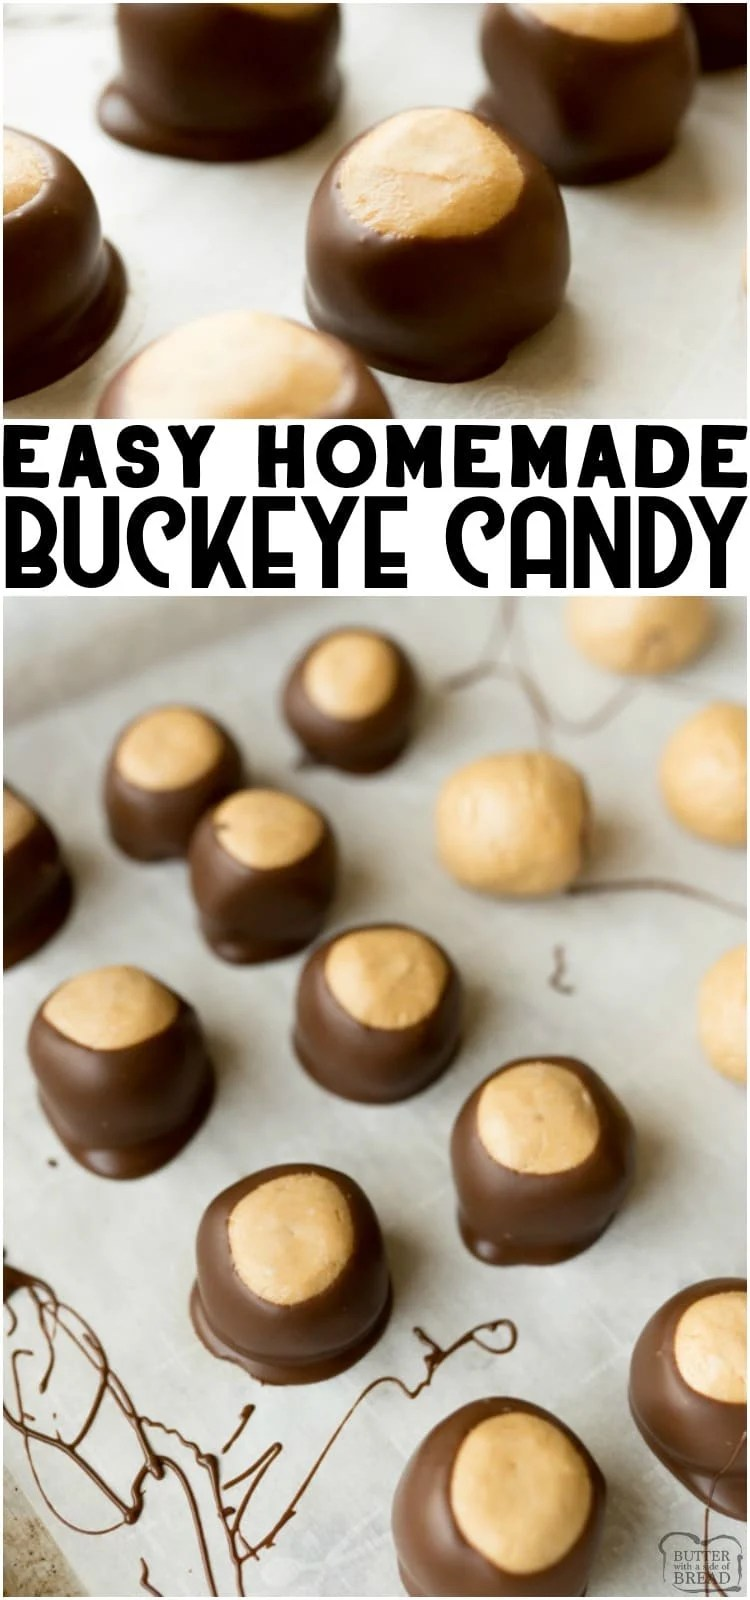 Buckeye Candy Recipe is a simple, no bake dessert. Buckeye balls are fudge-like peanut butter ball is dipped into melted chocolate to make this classic buckeye recipe. #buckceyerecipe #buckeyeballs #buckeyecandy #nobake #peanutbutter #chocolate #easydessert #recipefrom Butter With a Side of Bread